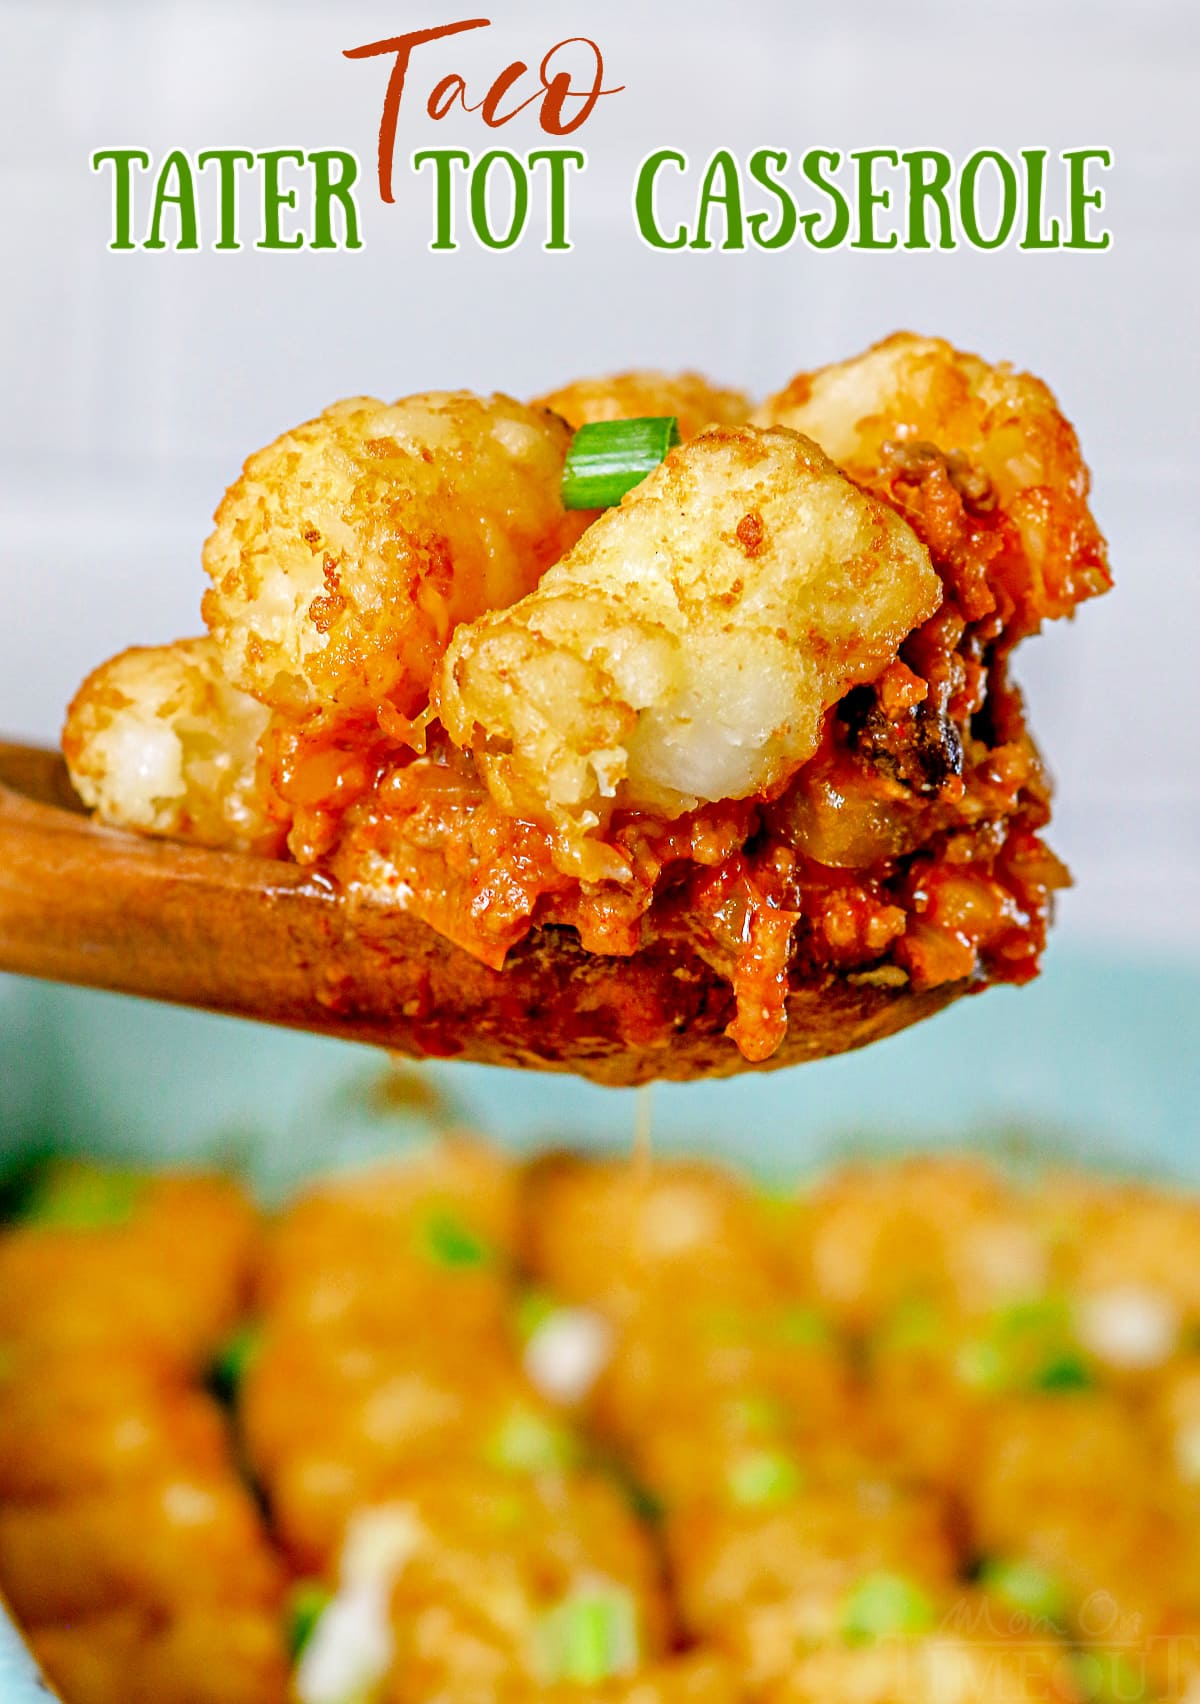 taco tater tot casserole being scooped out of dish with wood spoon with text overlay